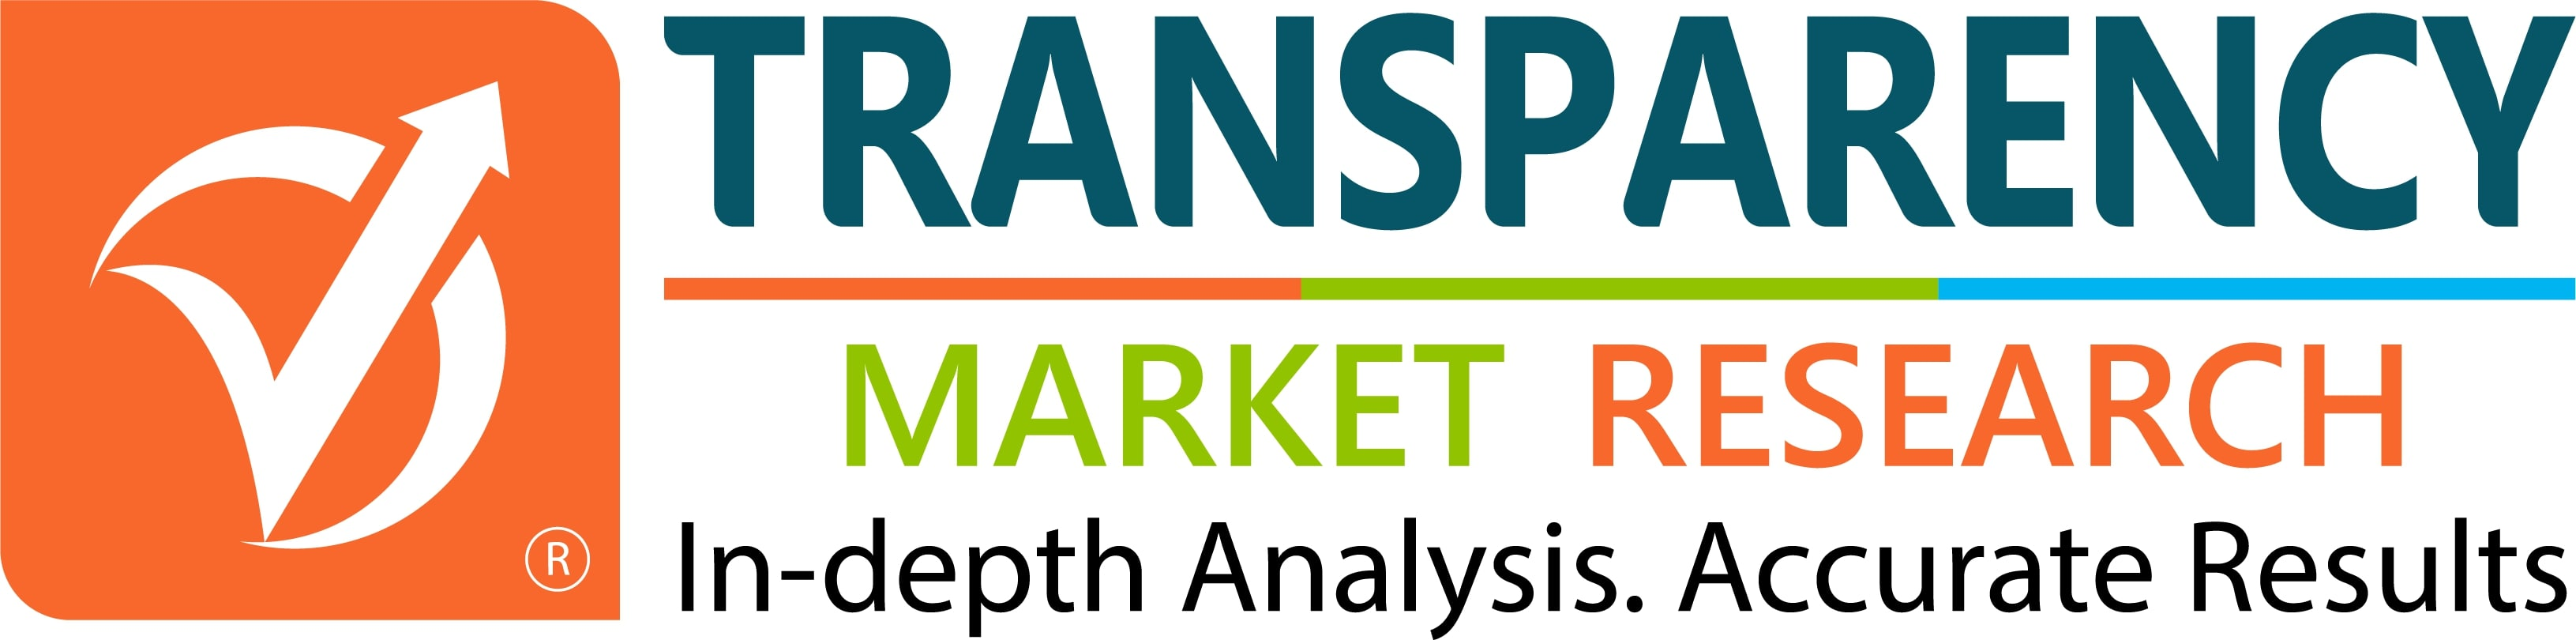 Minimally Invasive Surgery Market is Slated to Surpass US$ 23.6 Bn by 2031 | New Research By Transparency Market Research